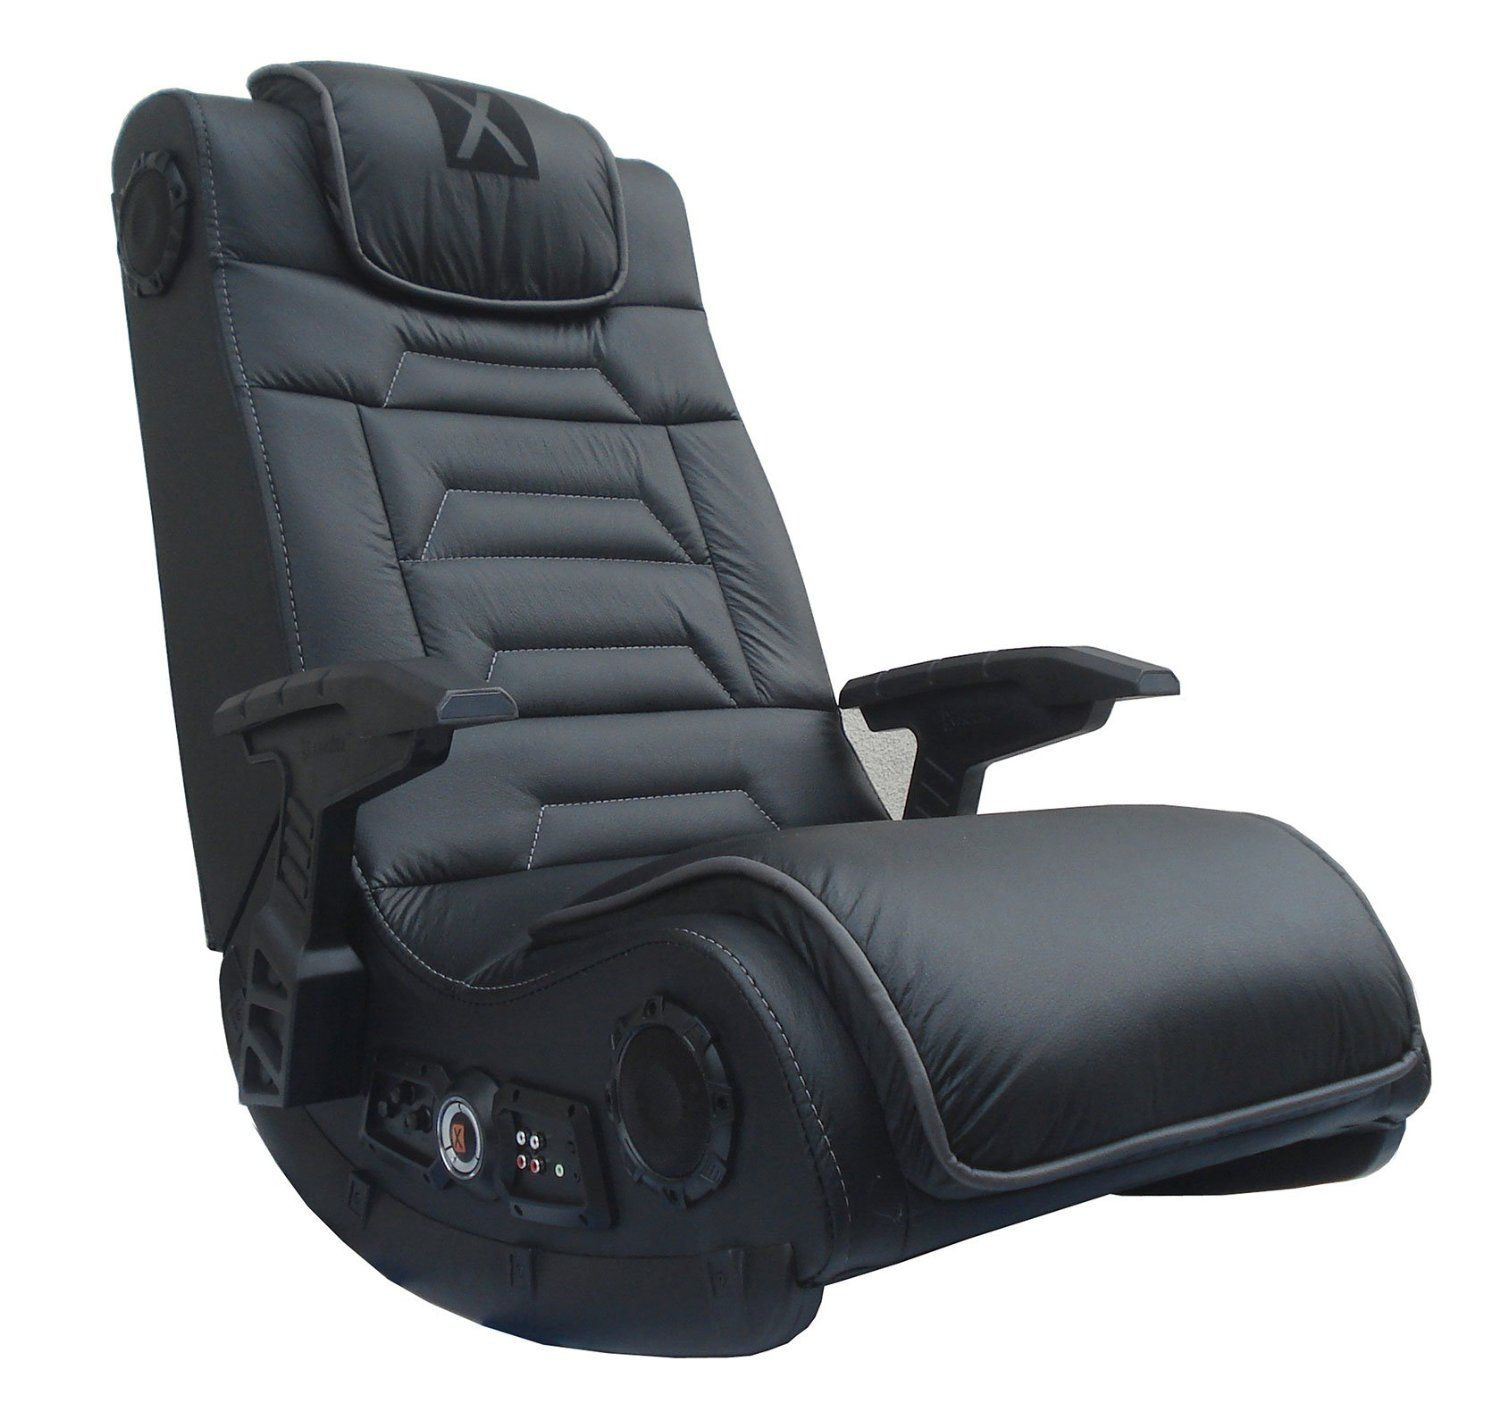 High Quality Amazon.com : X Rocker 51259 Pro H3 4.1 Audio Gaming Chair, Wireless Click